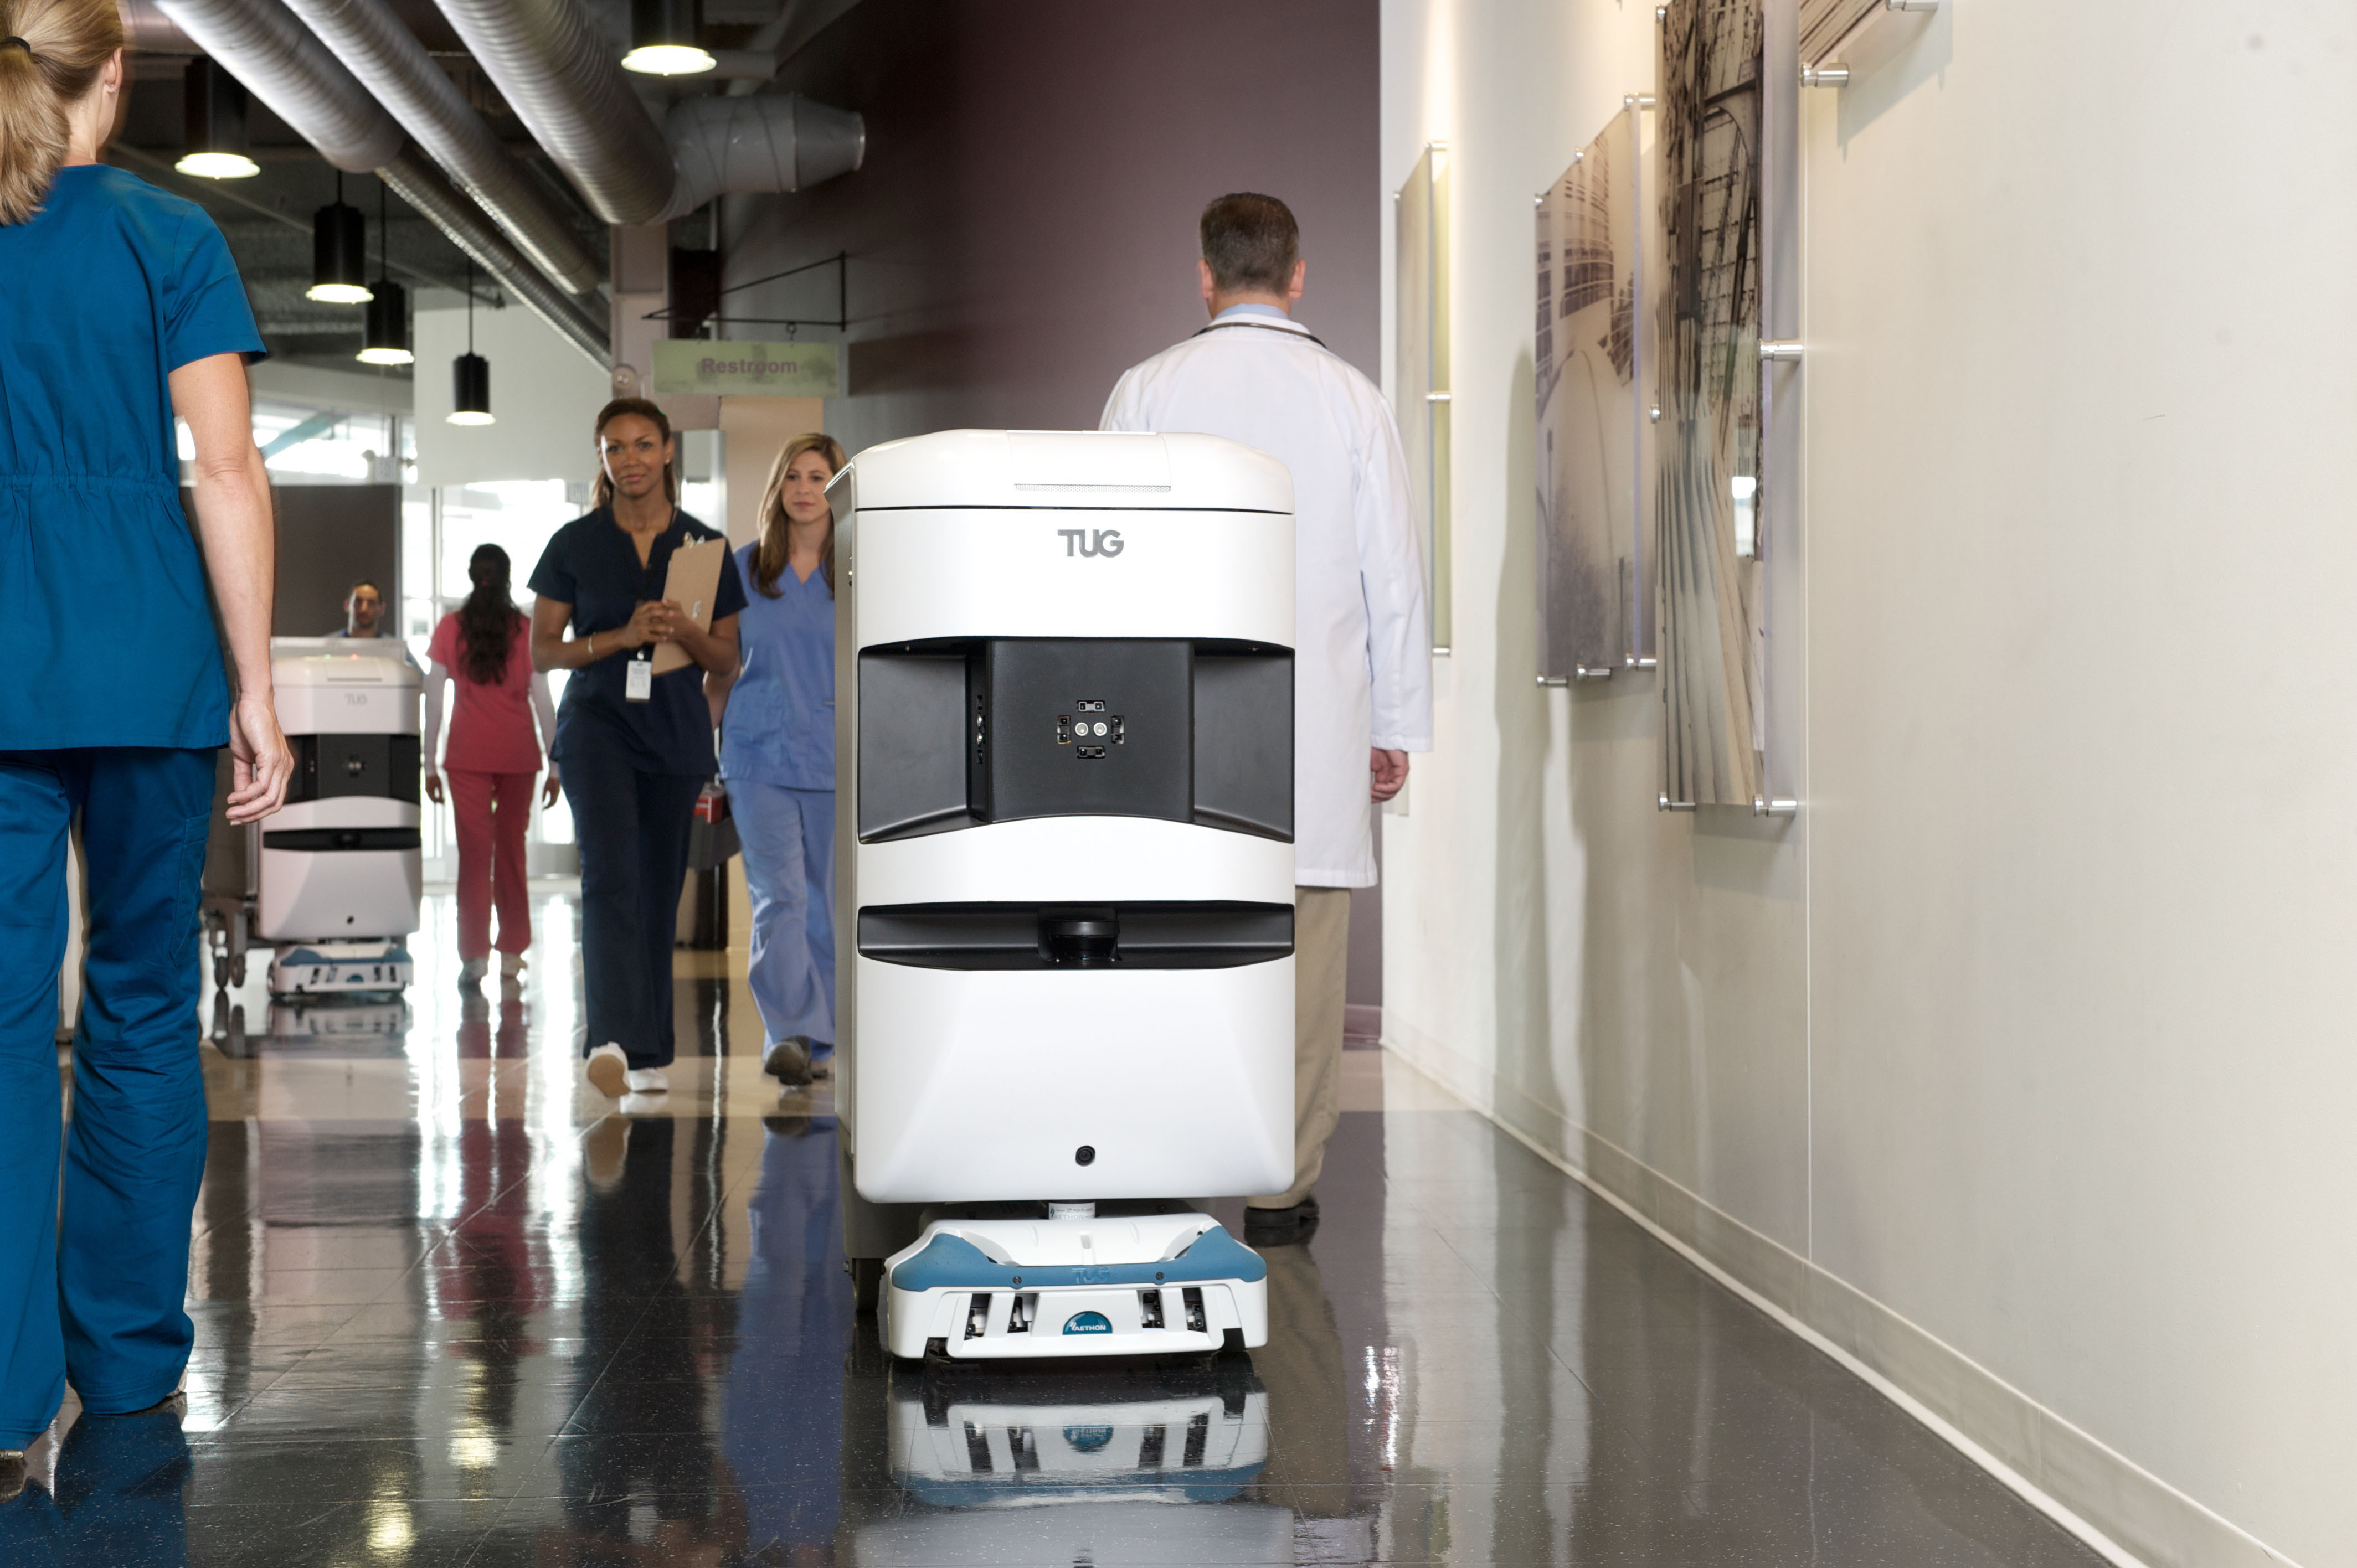 Aethon TUG autonomous mobile robot automates delivery and material movement in hospitals. (Photo: Business Wire)